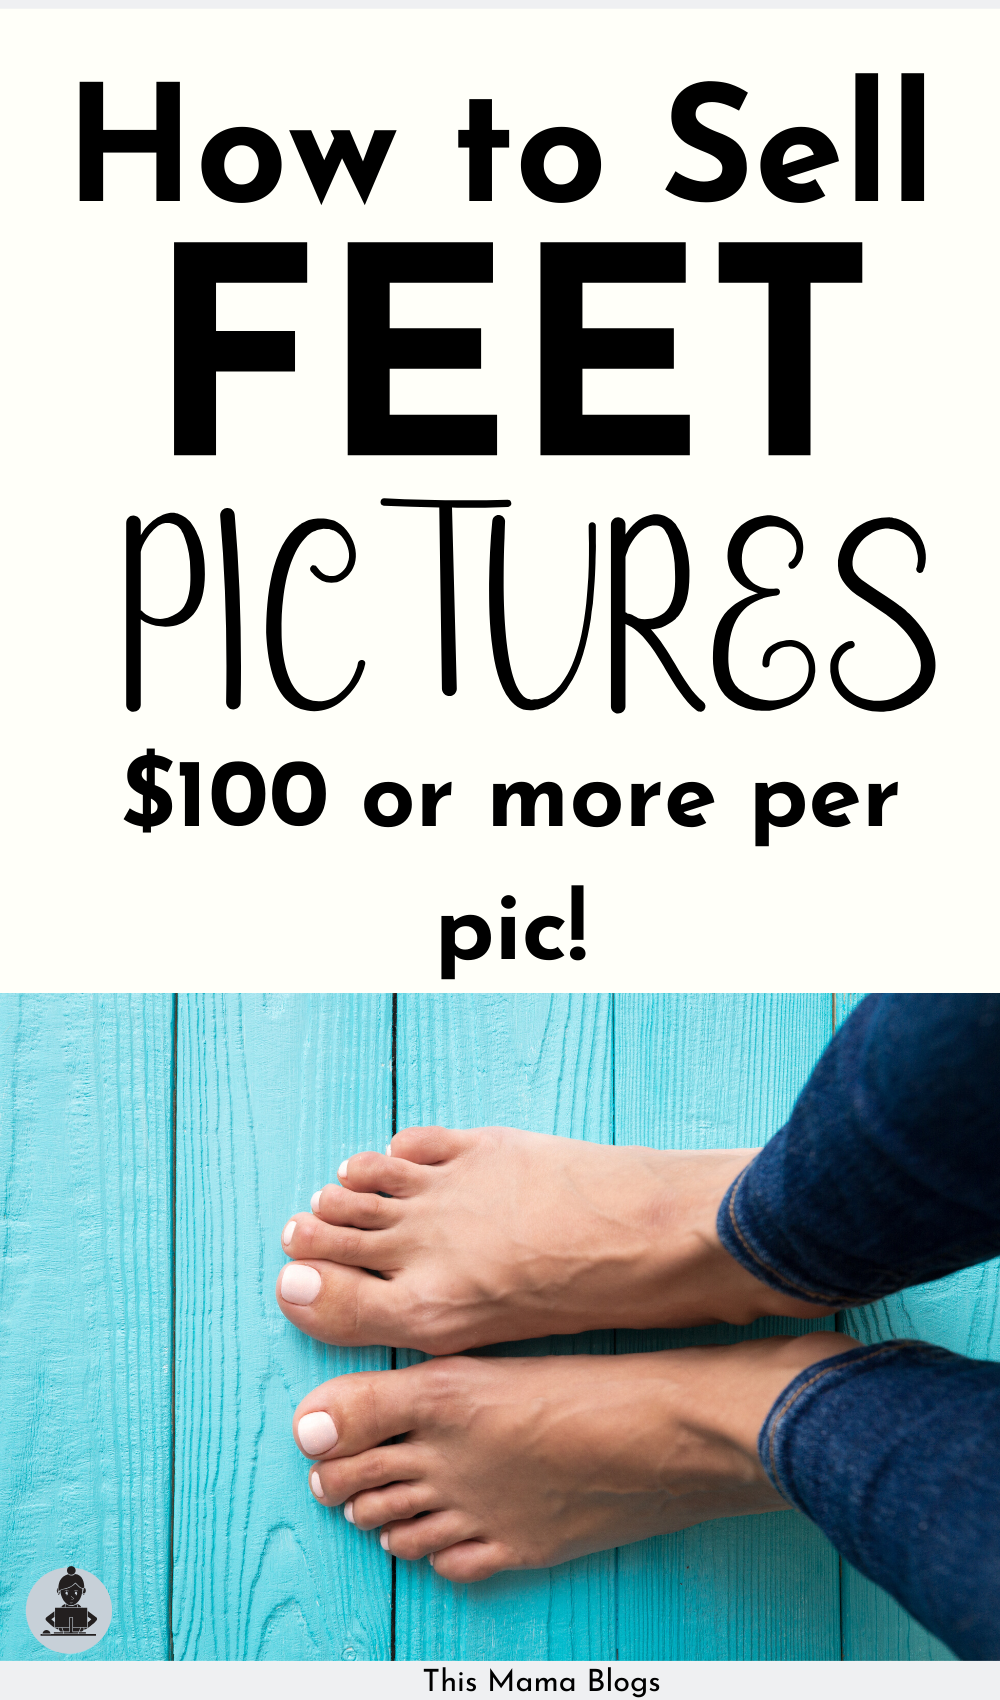 How To Make Money With Pictures Of Your Feet